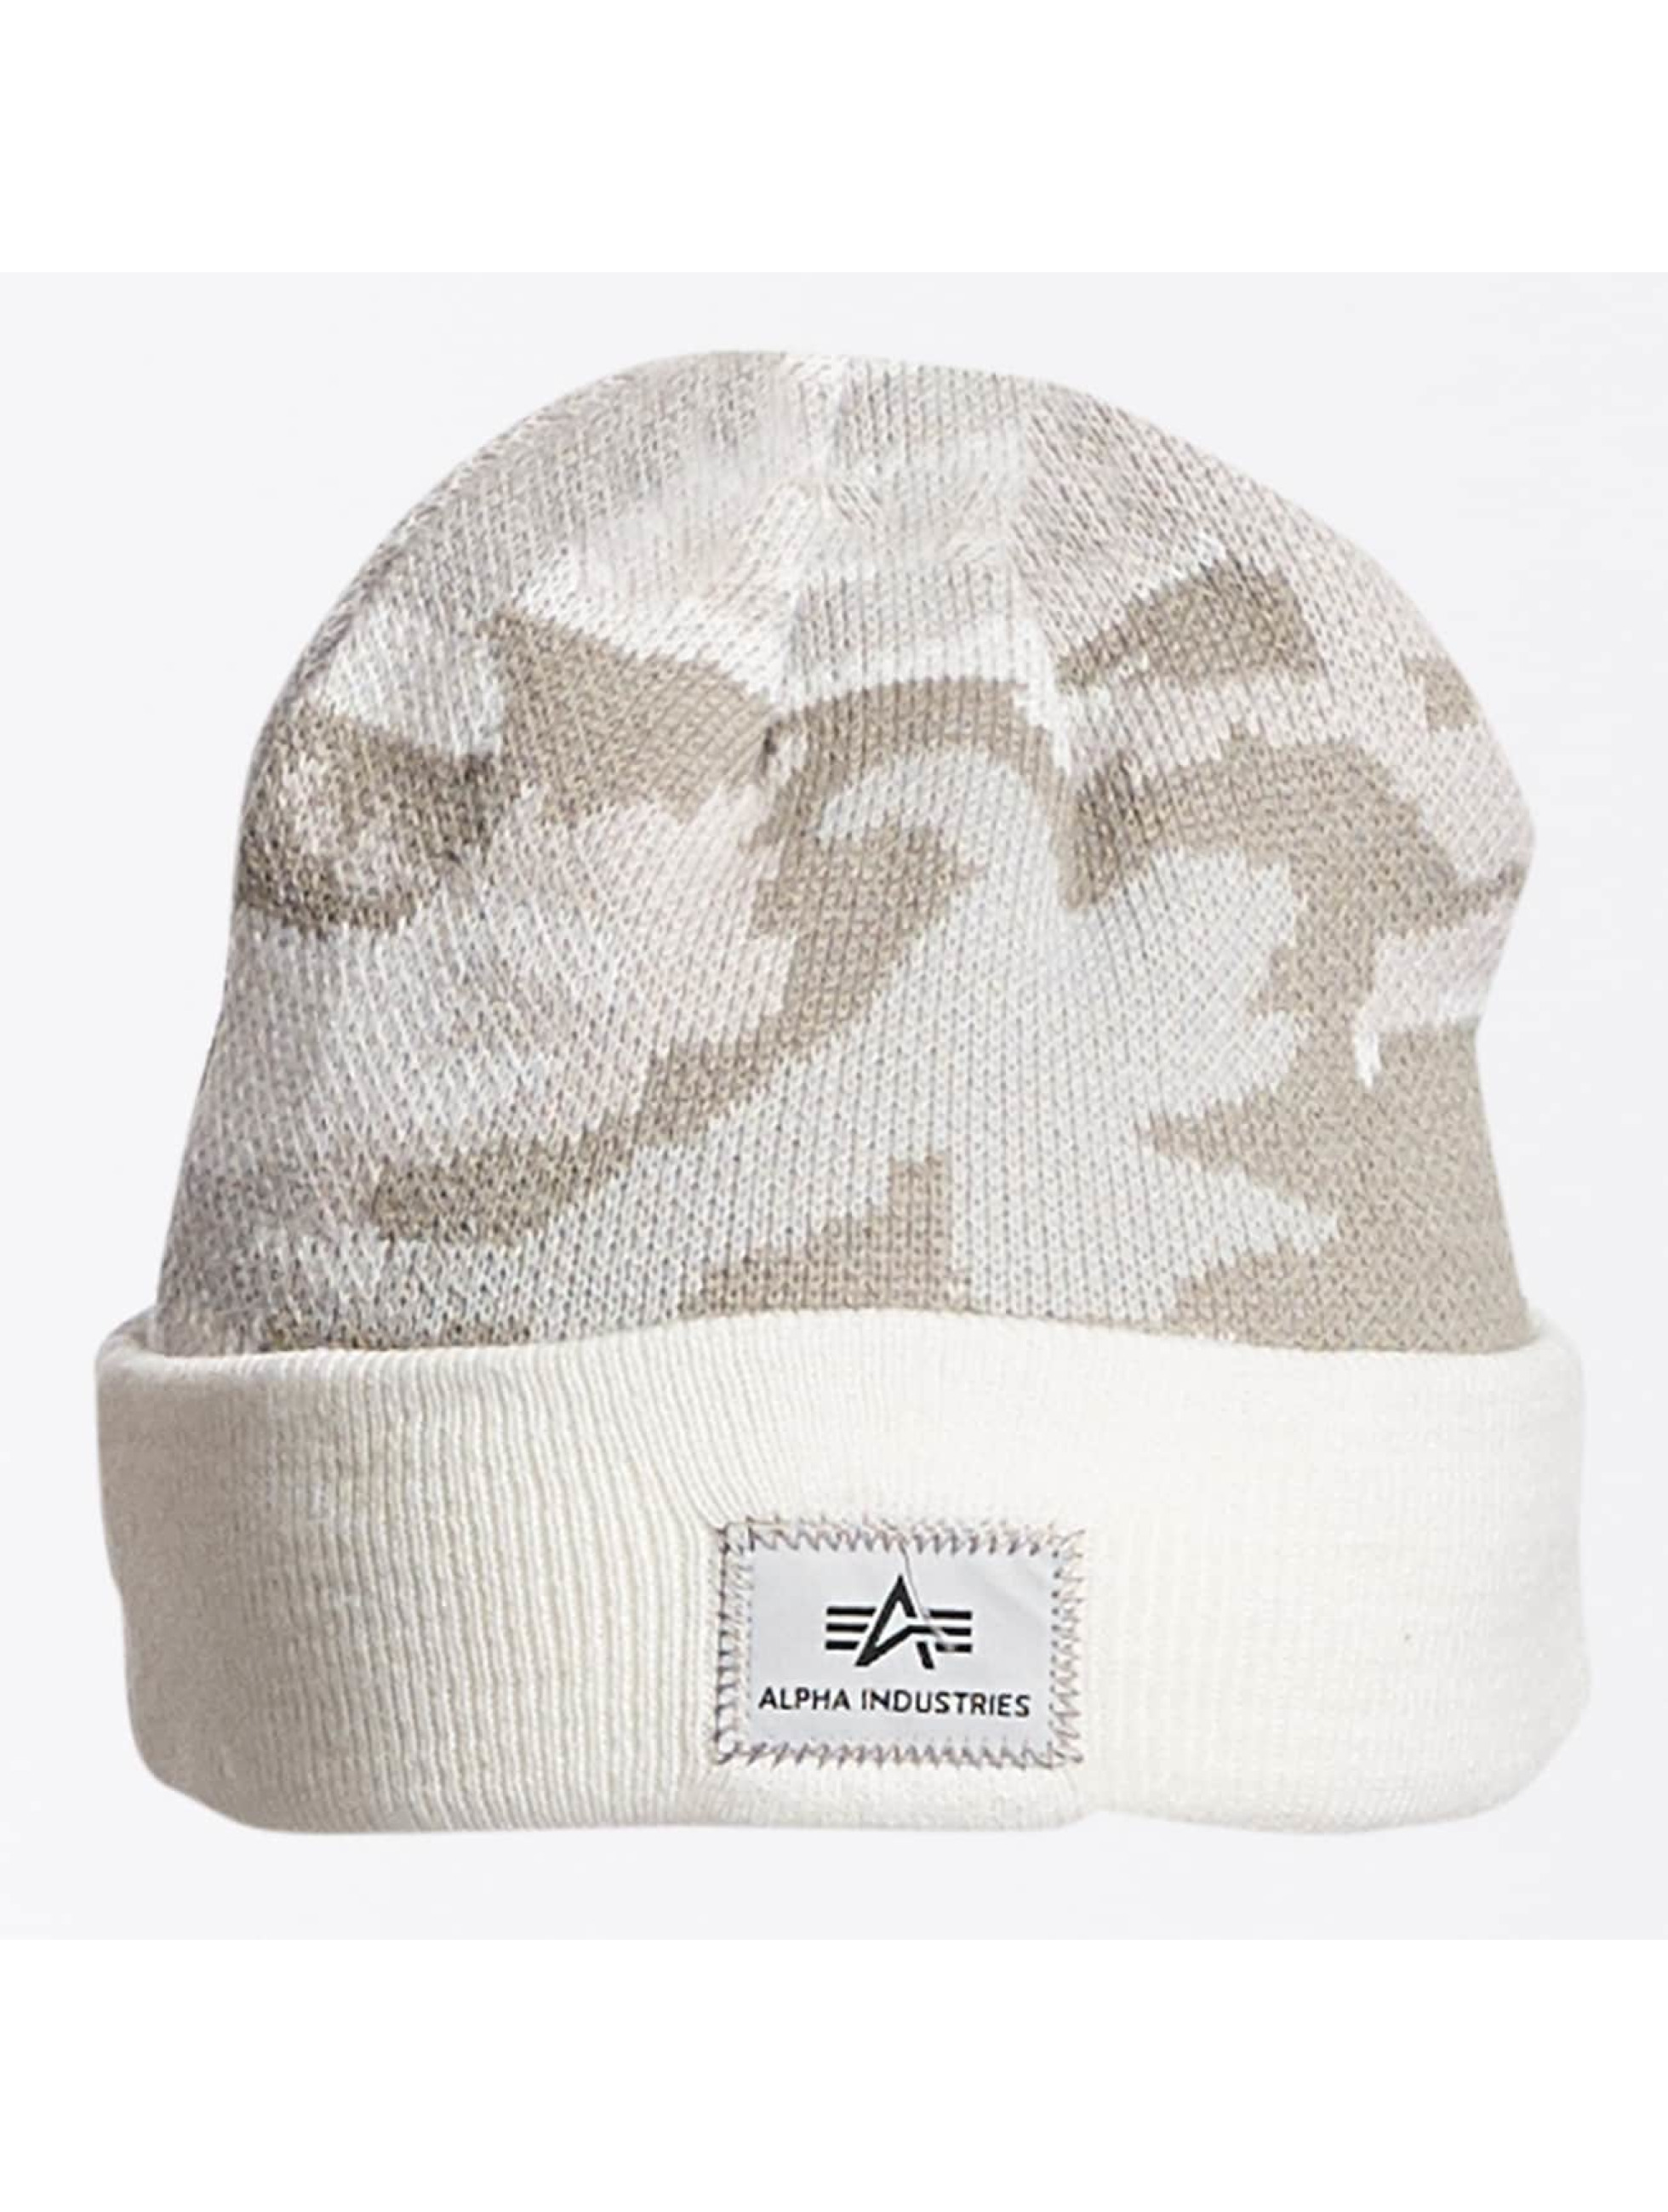 Alpha Industries Männer,Frauen Beanie X-Fit in camouflage